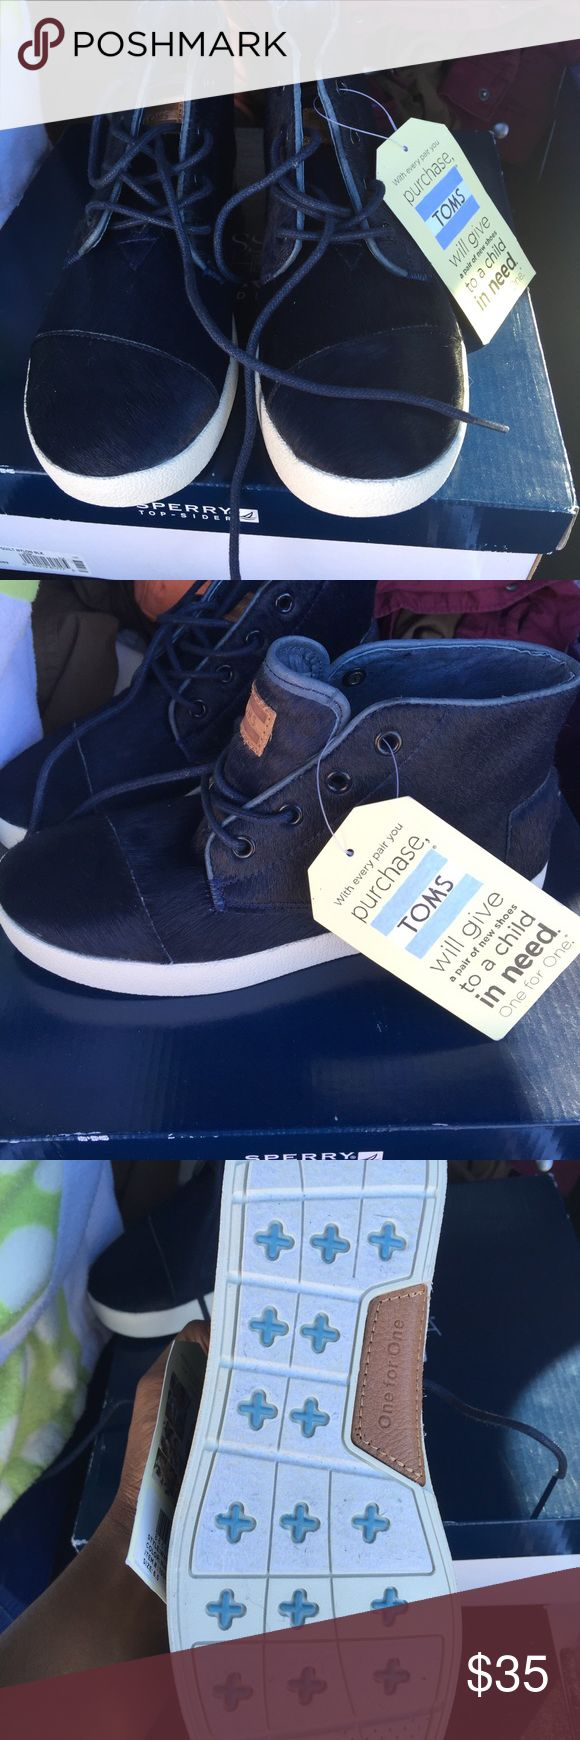 Velvet/Faux Fur Navy Toms NWT Navy Hightop Toms. Have a fur feel to them. Nice for Fall with a cute plaid vest. TOMS Shoes Sneakers